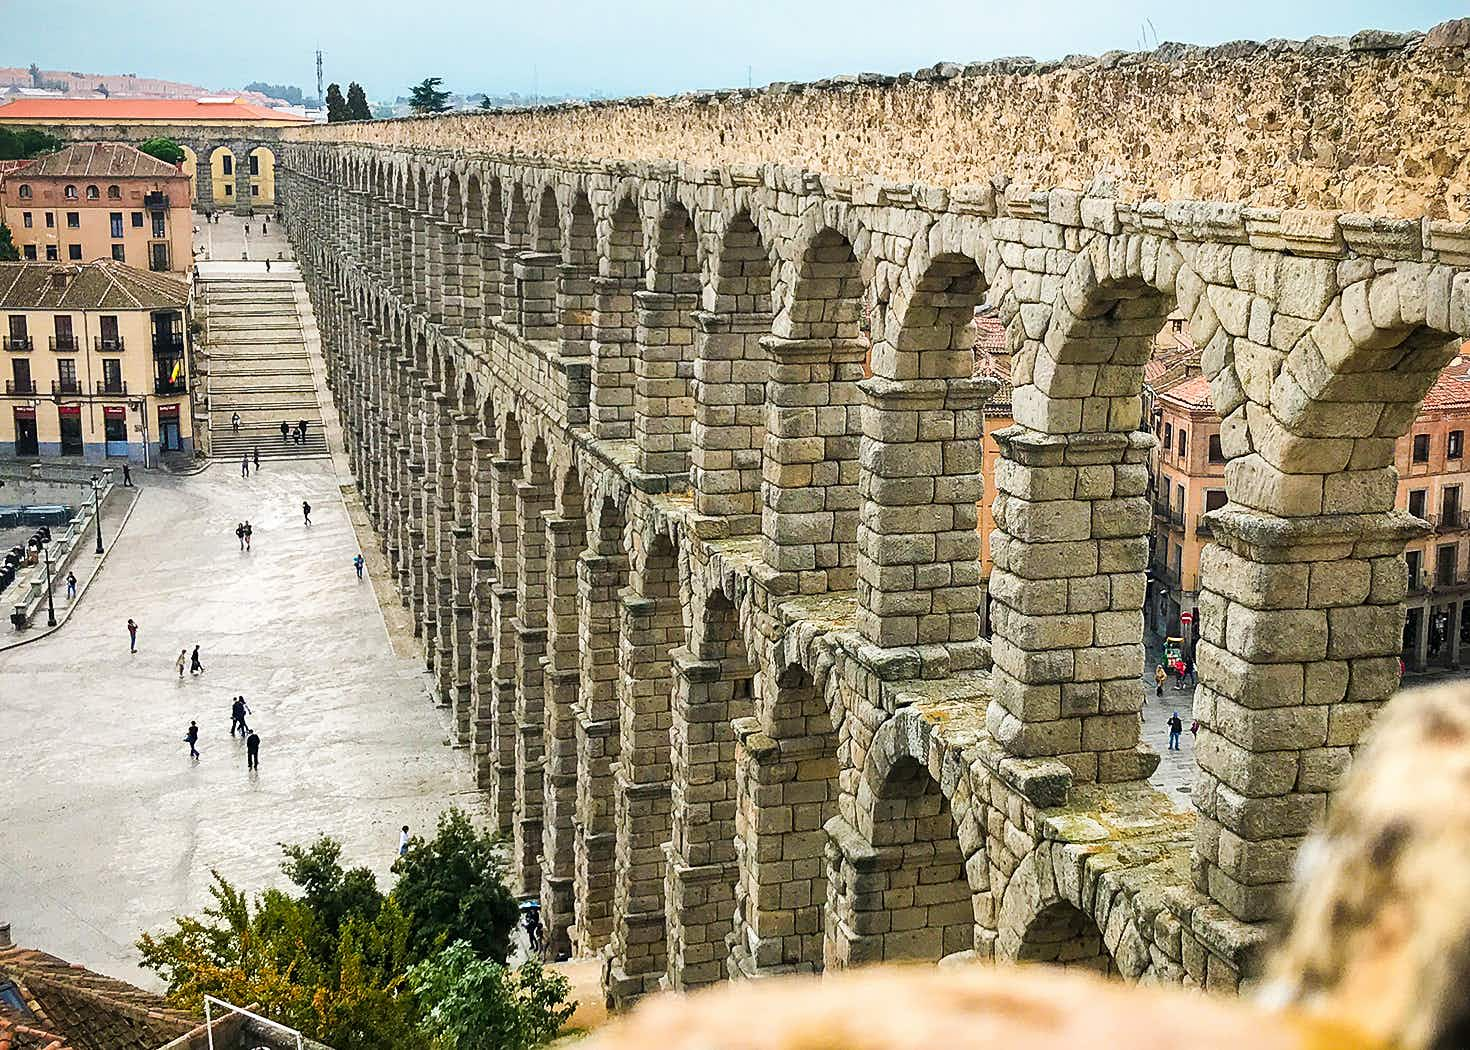 Spain's heartland is the perfect road trip